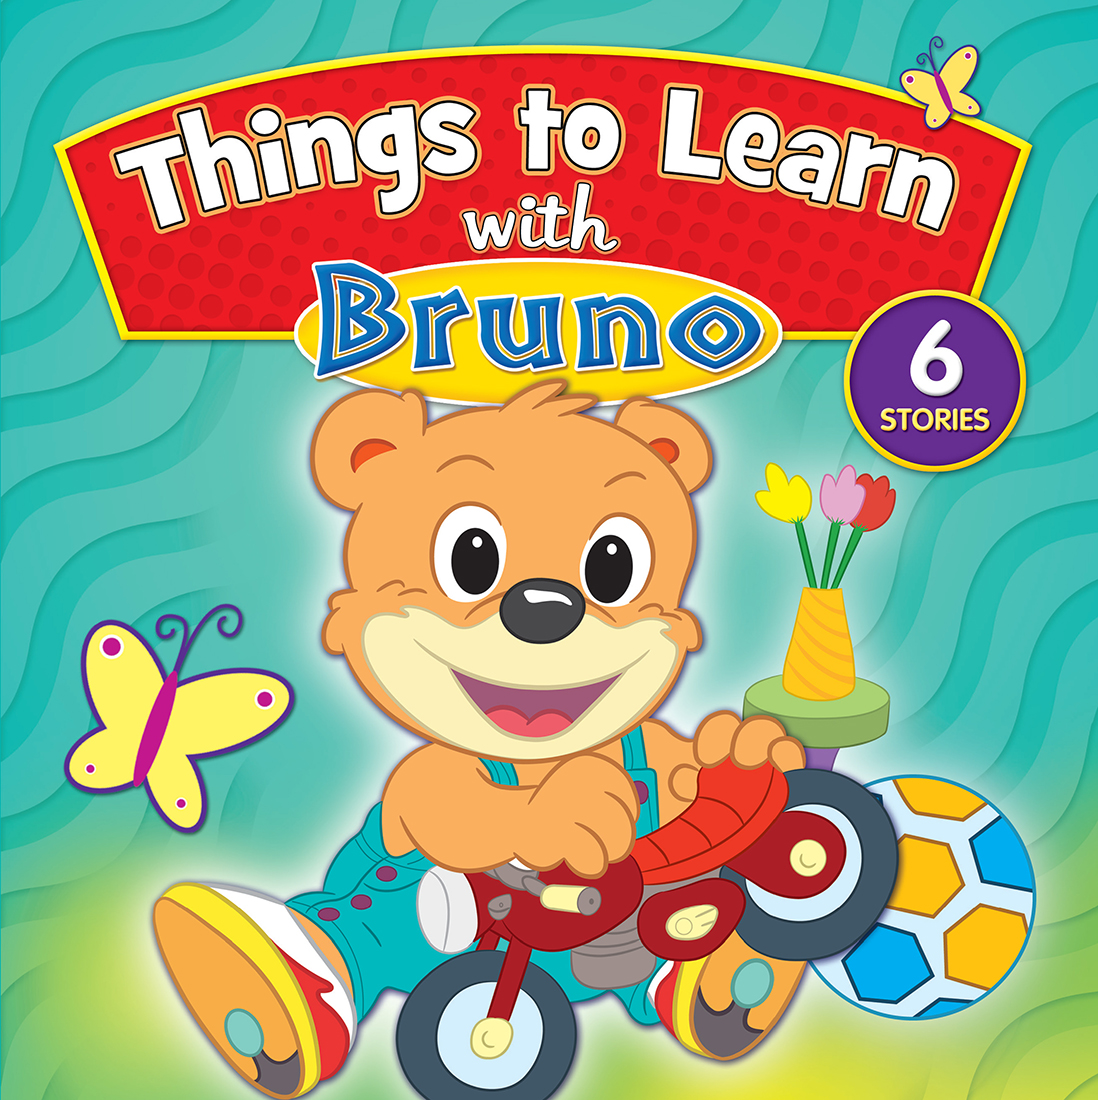 Things to Learn with Bruno